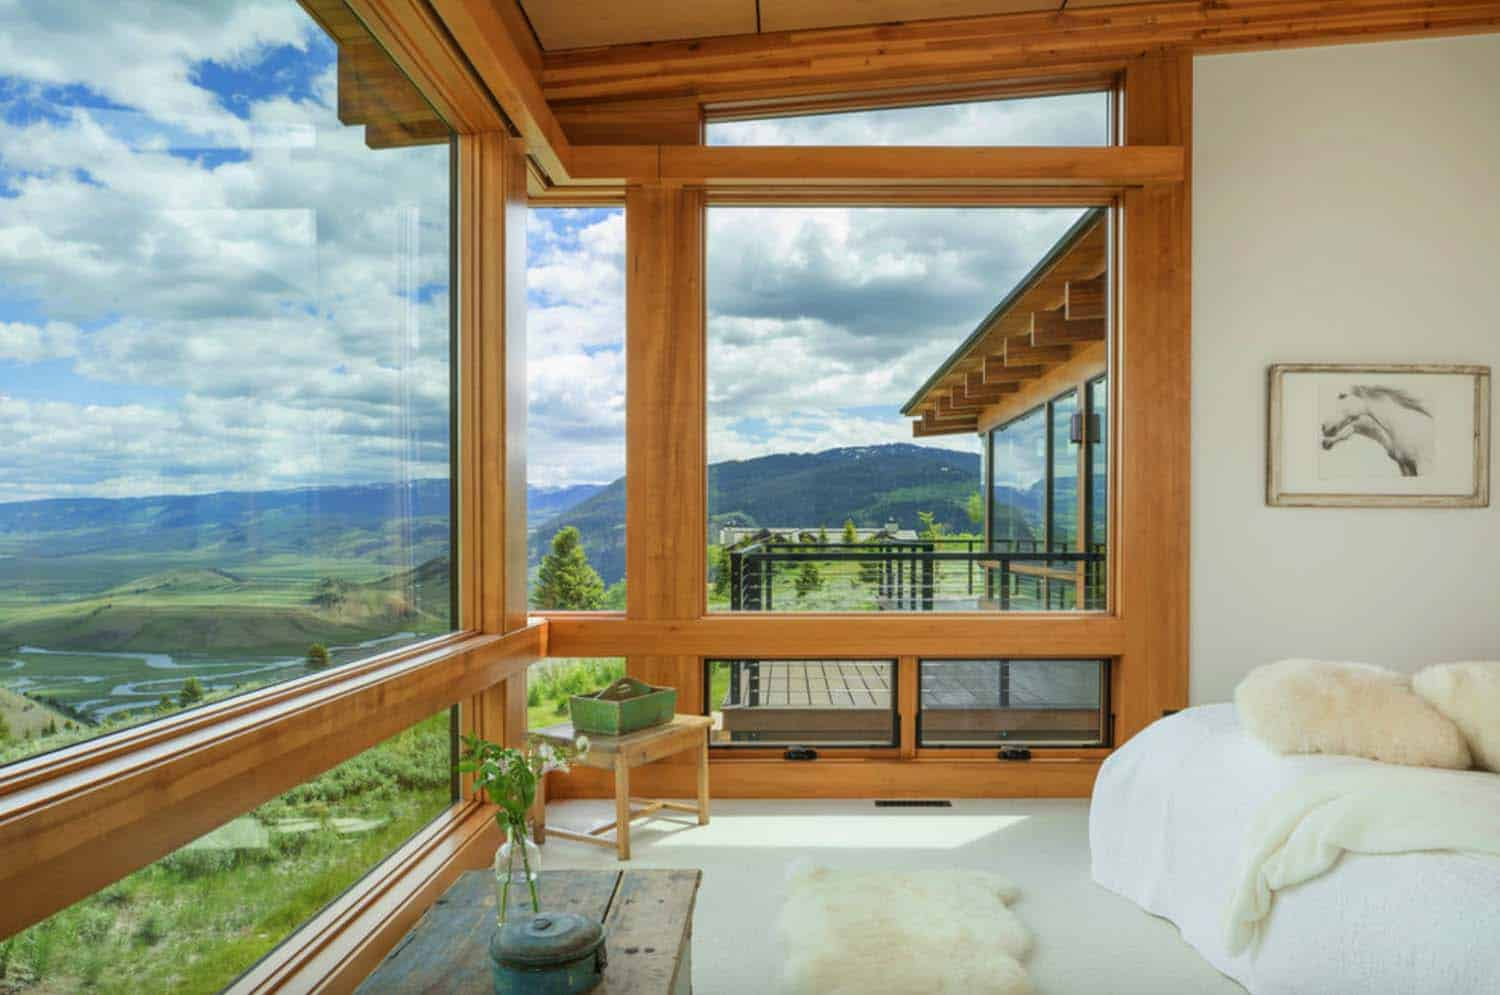 southwestern-bedroom-with-mountain-view